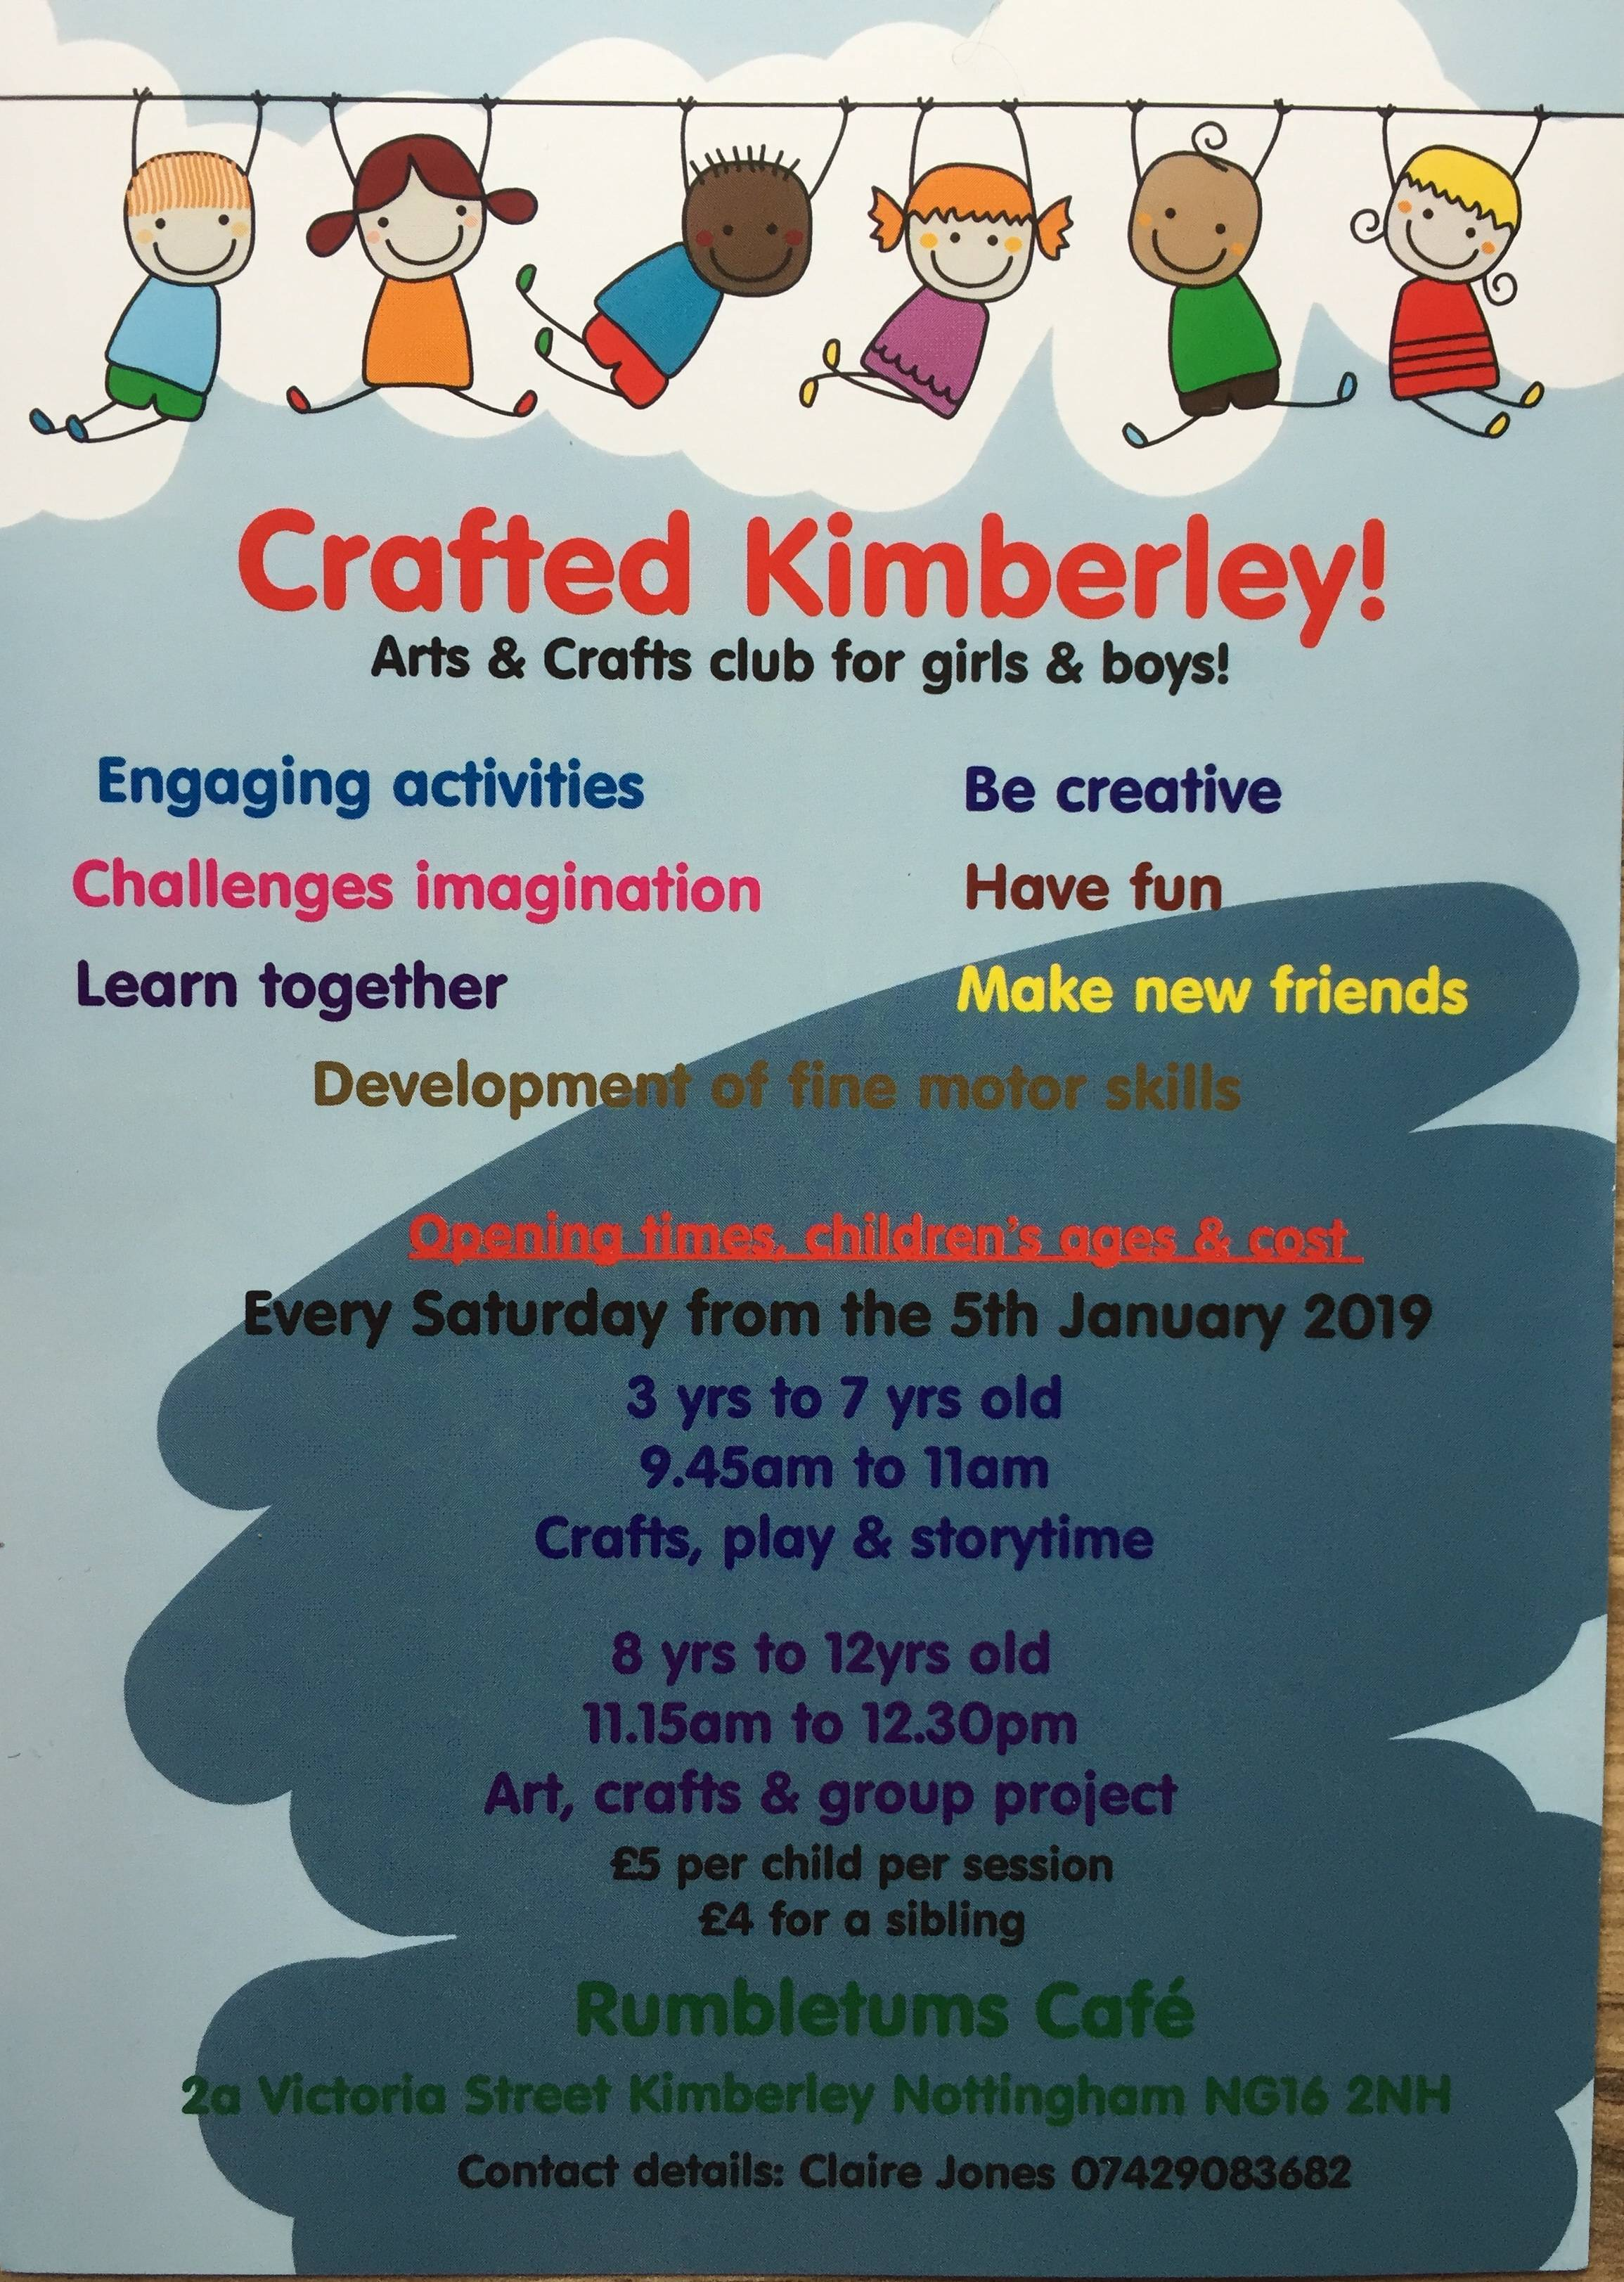 Crafted Kimberley